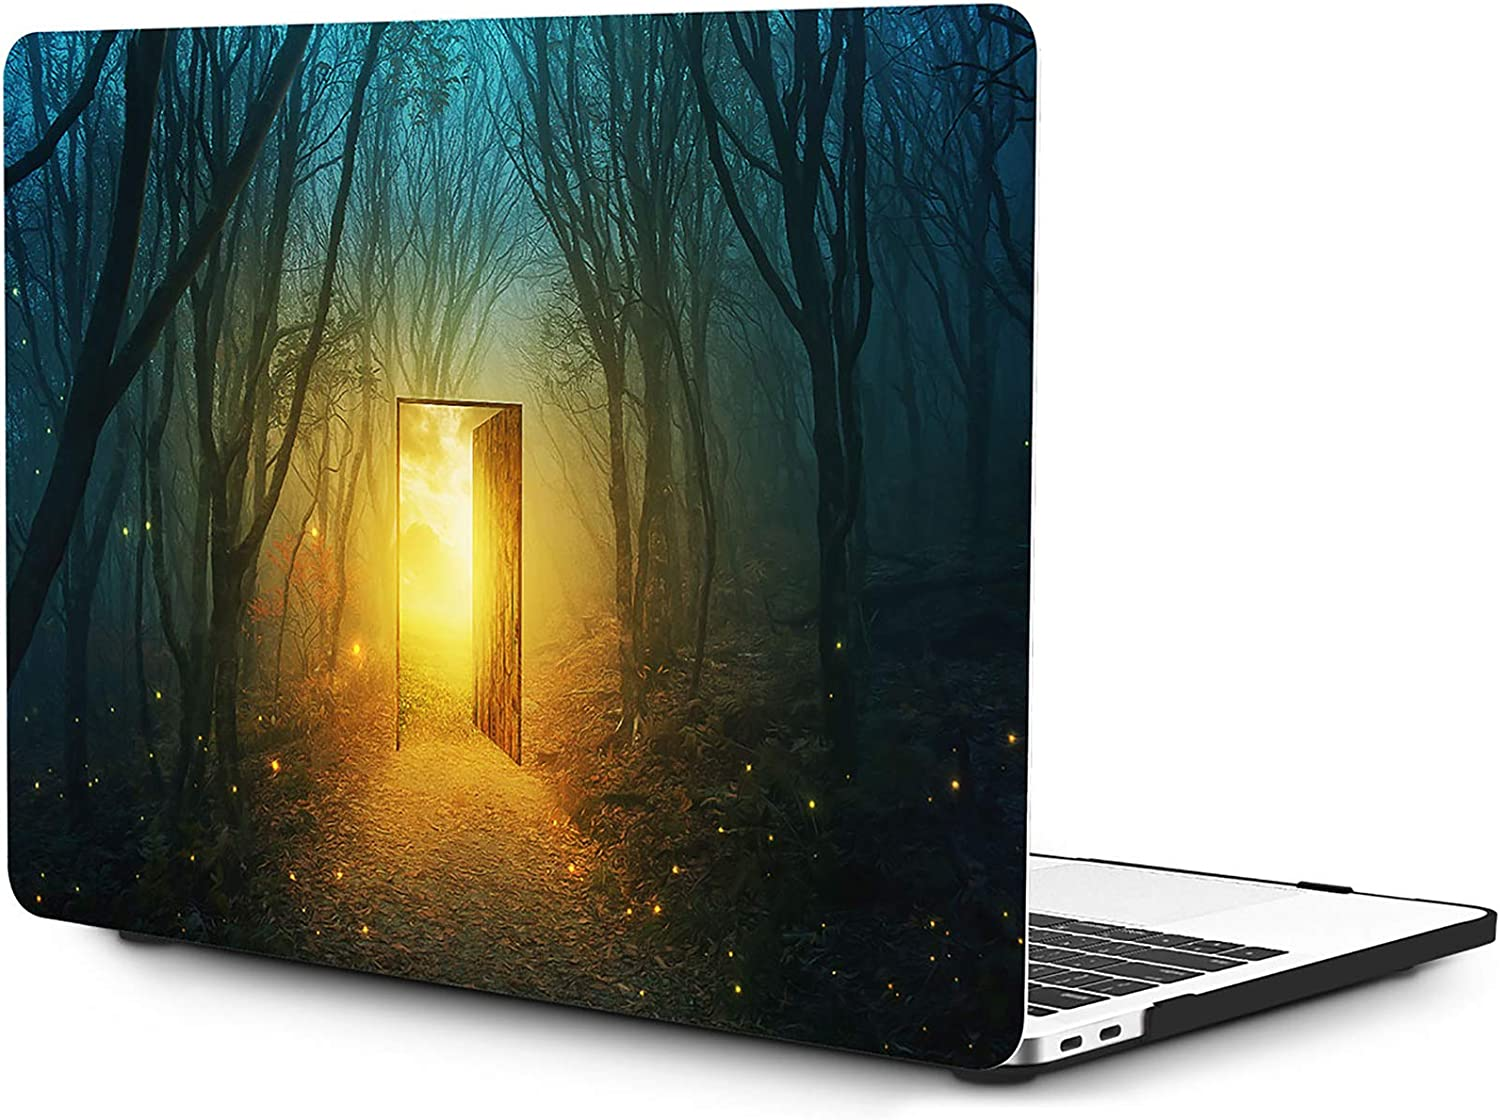 OneGET MacBook Pro 13 Inch Case with Touch Bar Laptop Case 2016 2017 2018 2019 Release A2159 A1989 A1706 A1708 Cover for MacBook Pro 13 Hard Shell Mysterious Forest (S22)